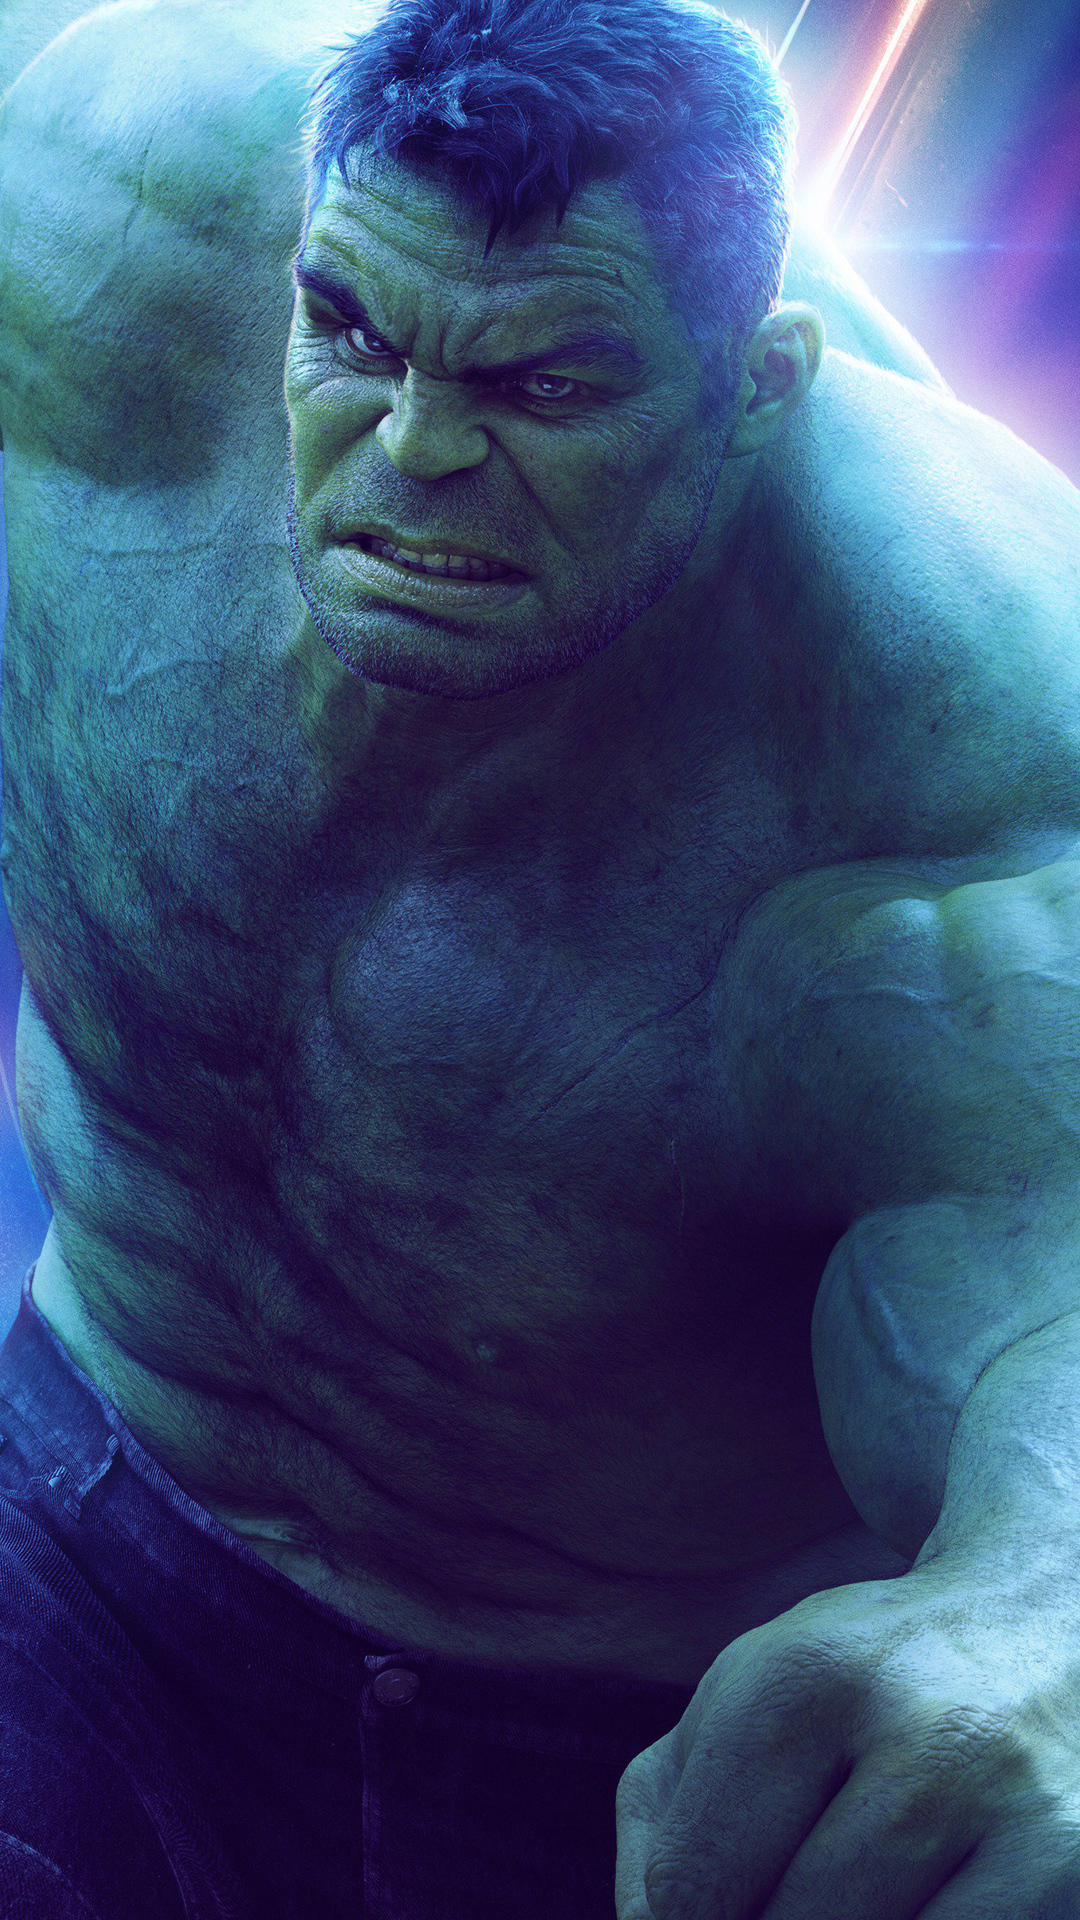 Hulk Infinity War Download 4k Wallpapers For Iphone And